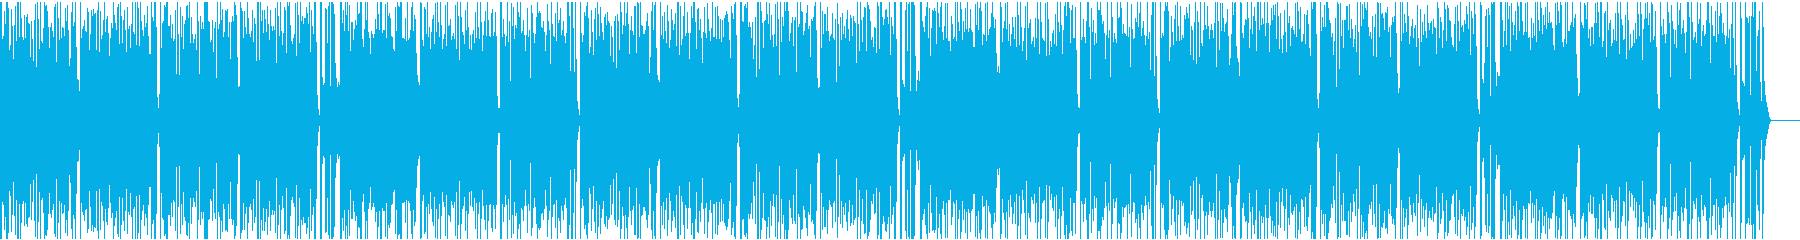 Fashionable cool's reproduced waveform